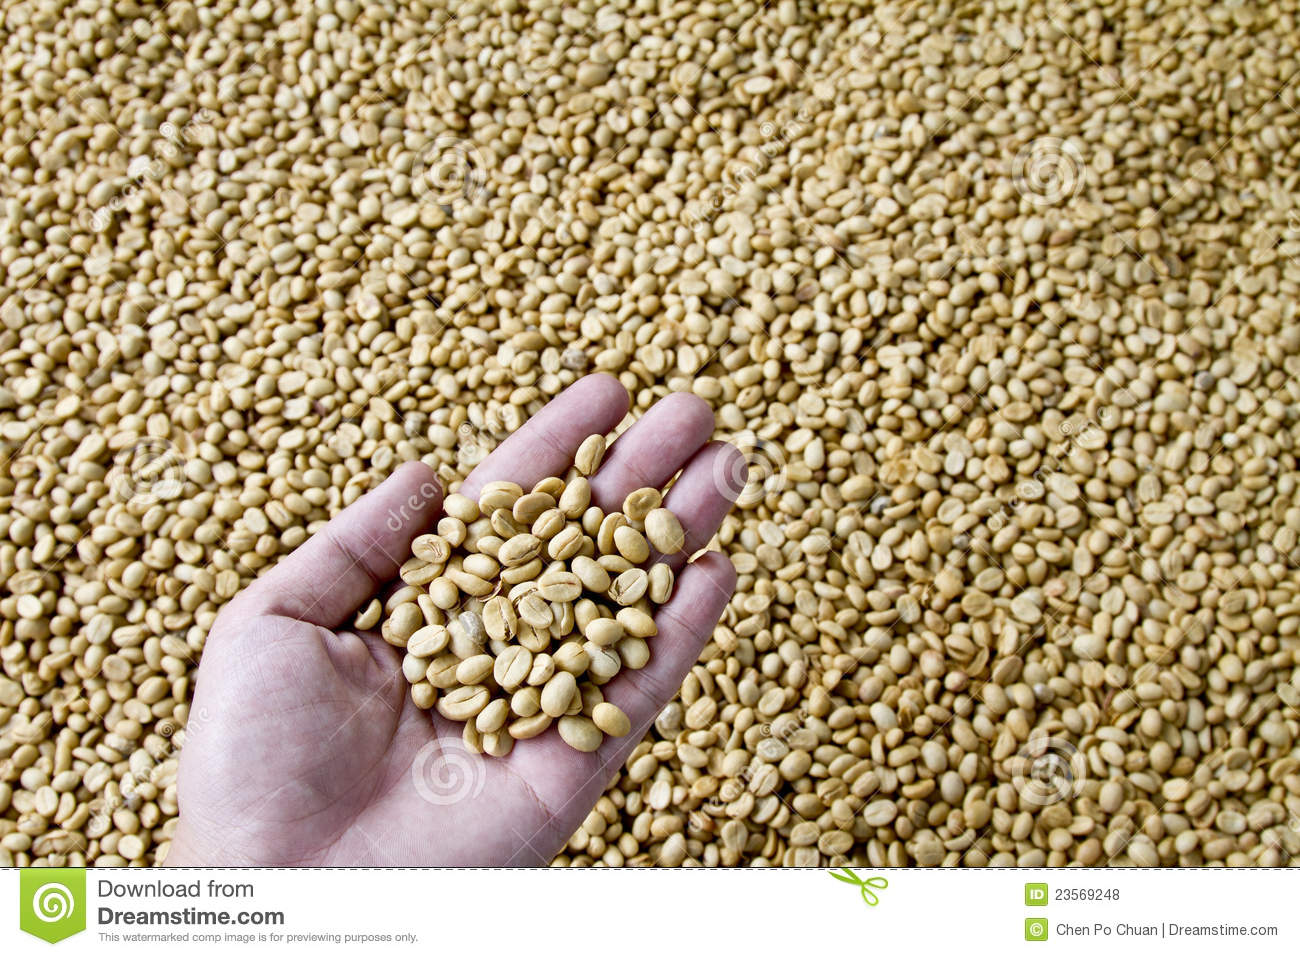 Unroasted Organic Arabica Coffee Beans Green Unroasted Coffee Beans In My Hand Royalty Free Stock